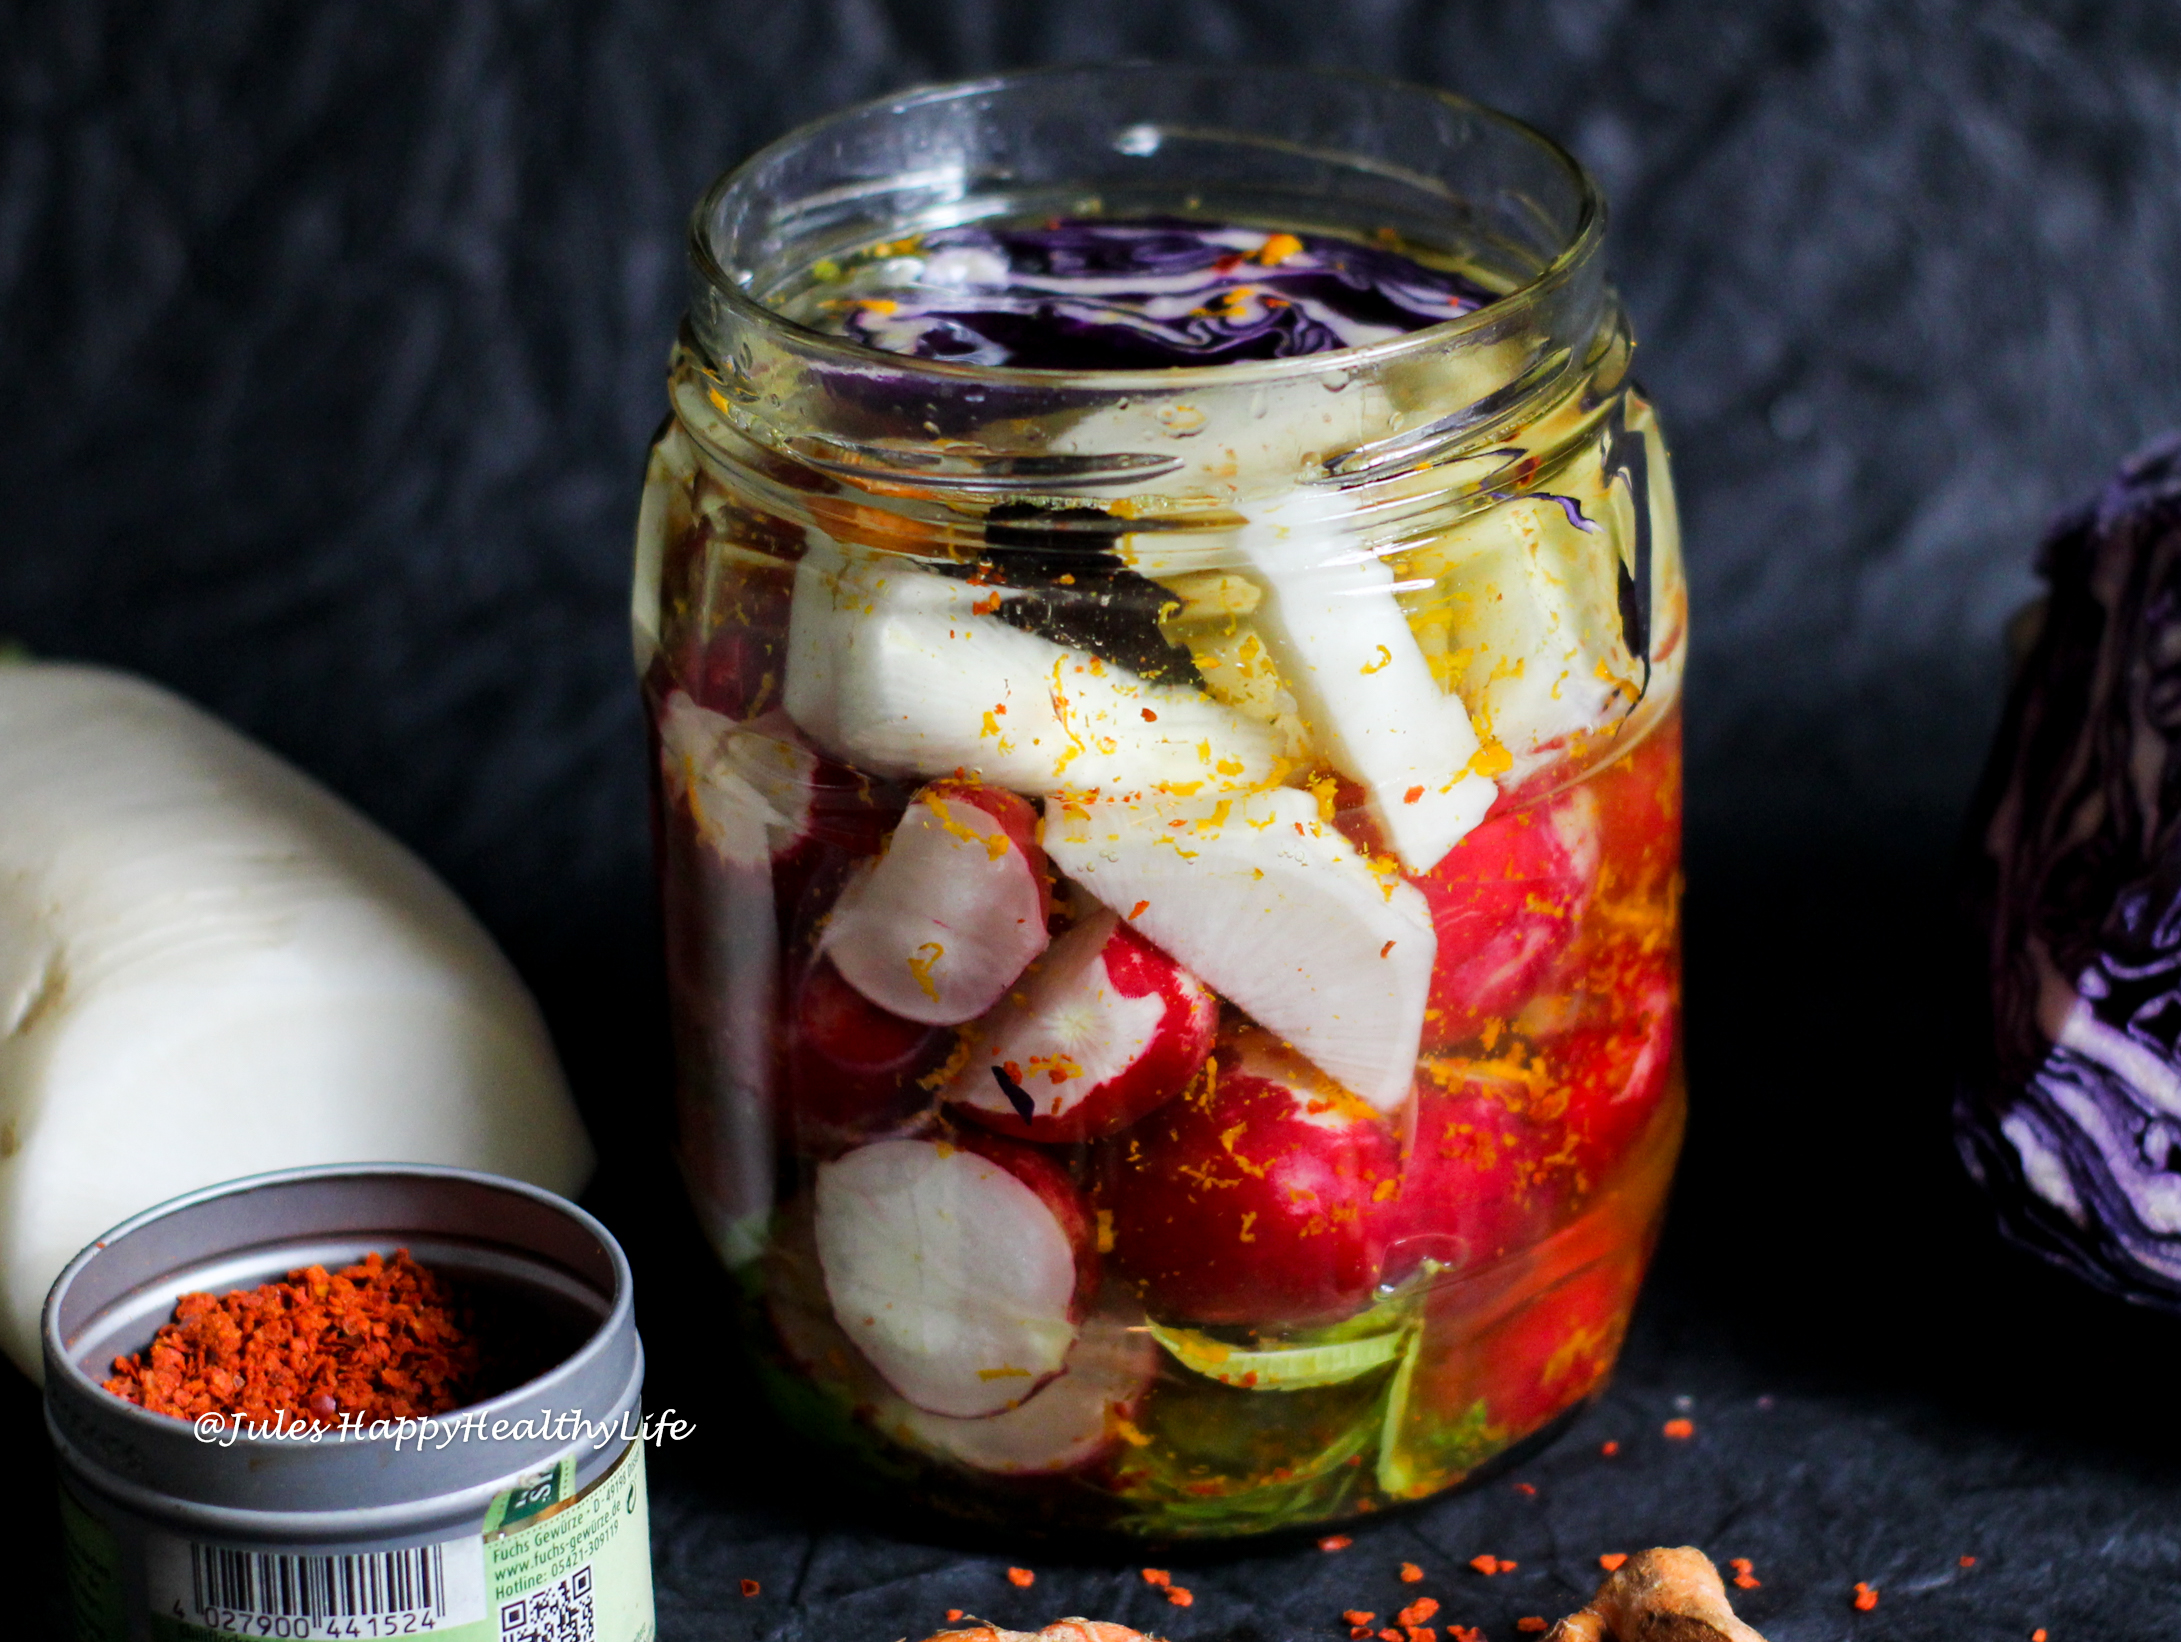 Enjoy your fermented vegetables with turmeric & chili alone or with a salad or other dishes